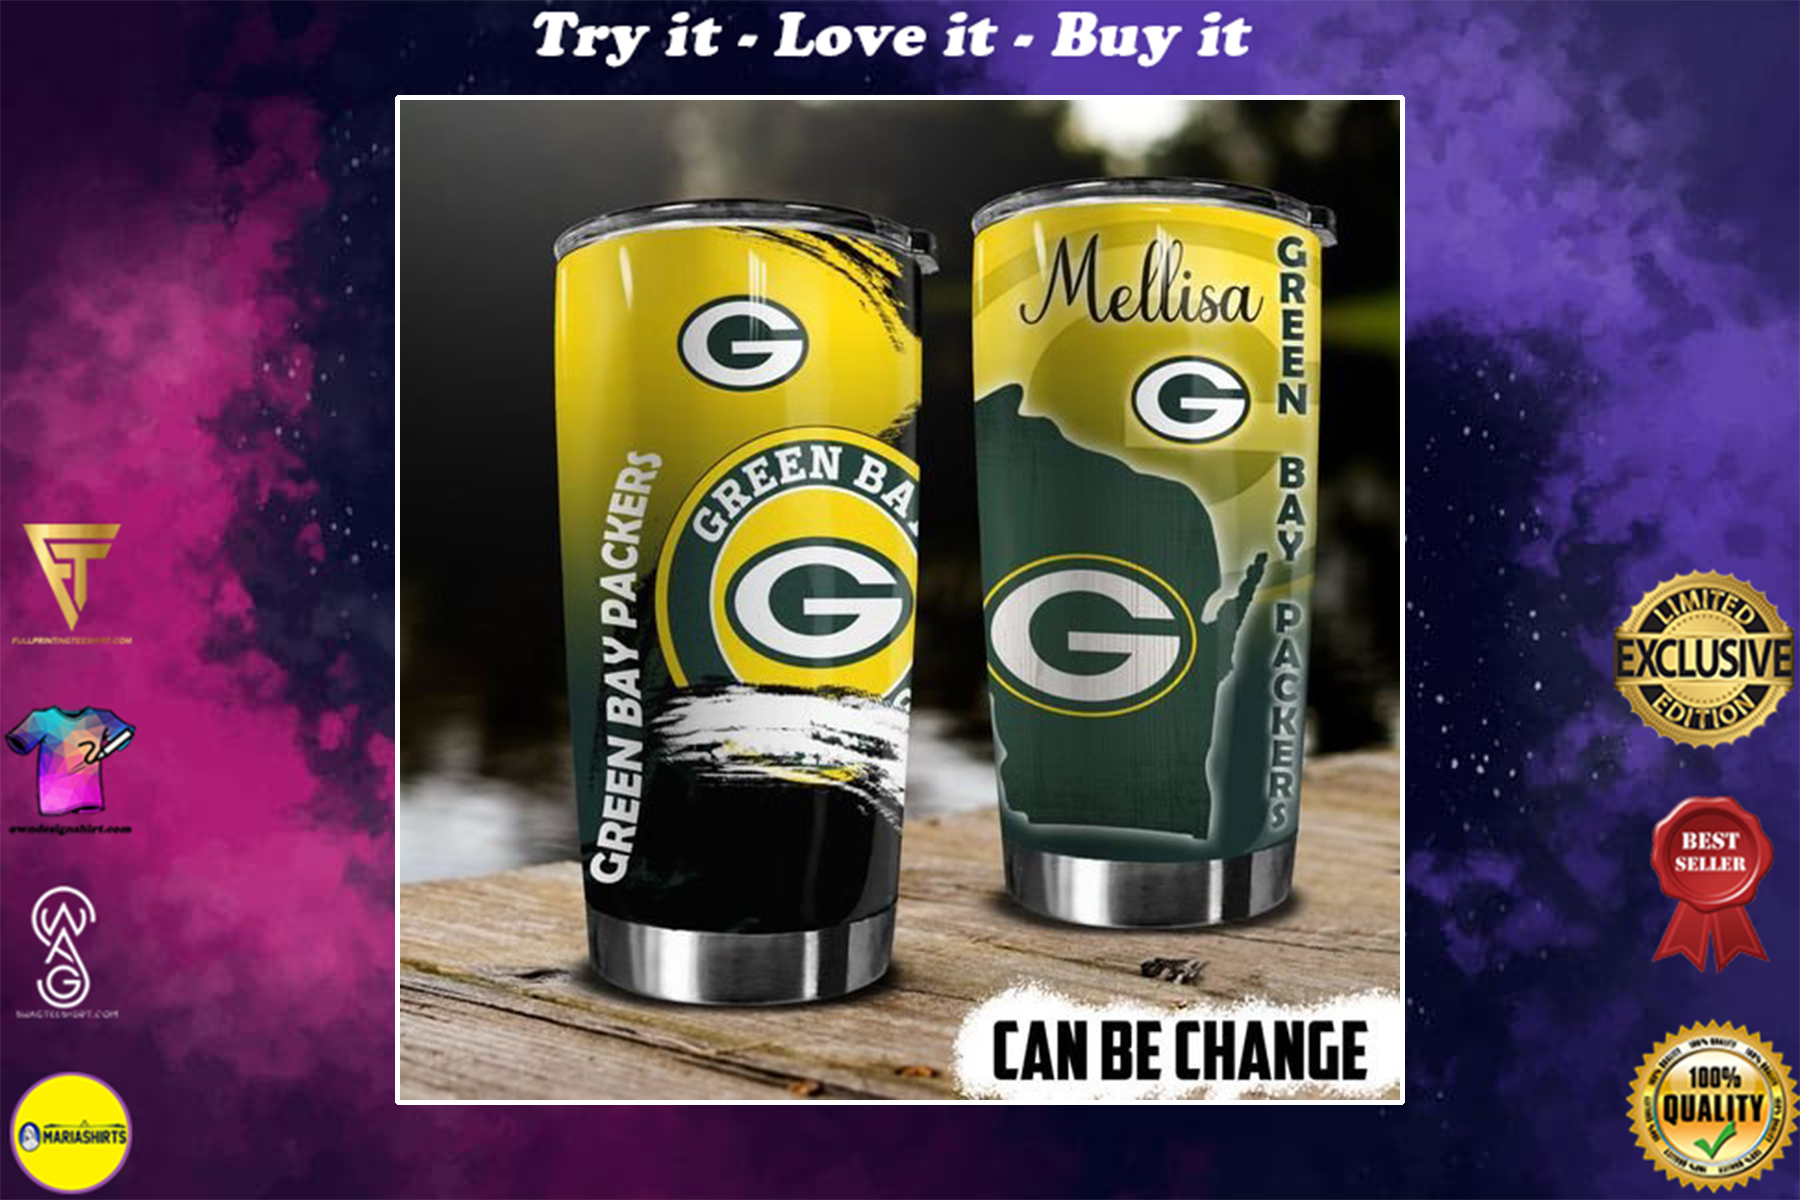 personalized name green bay packers football team tumbler